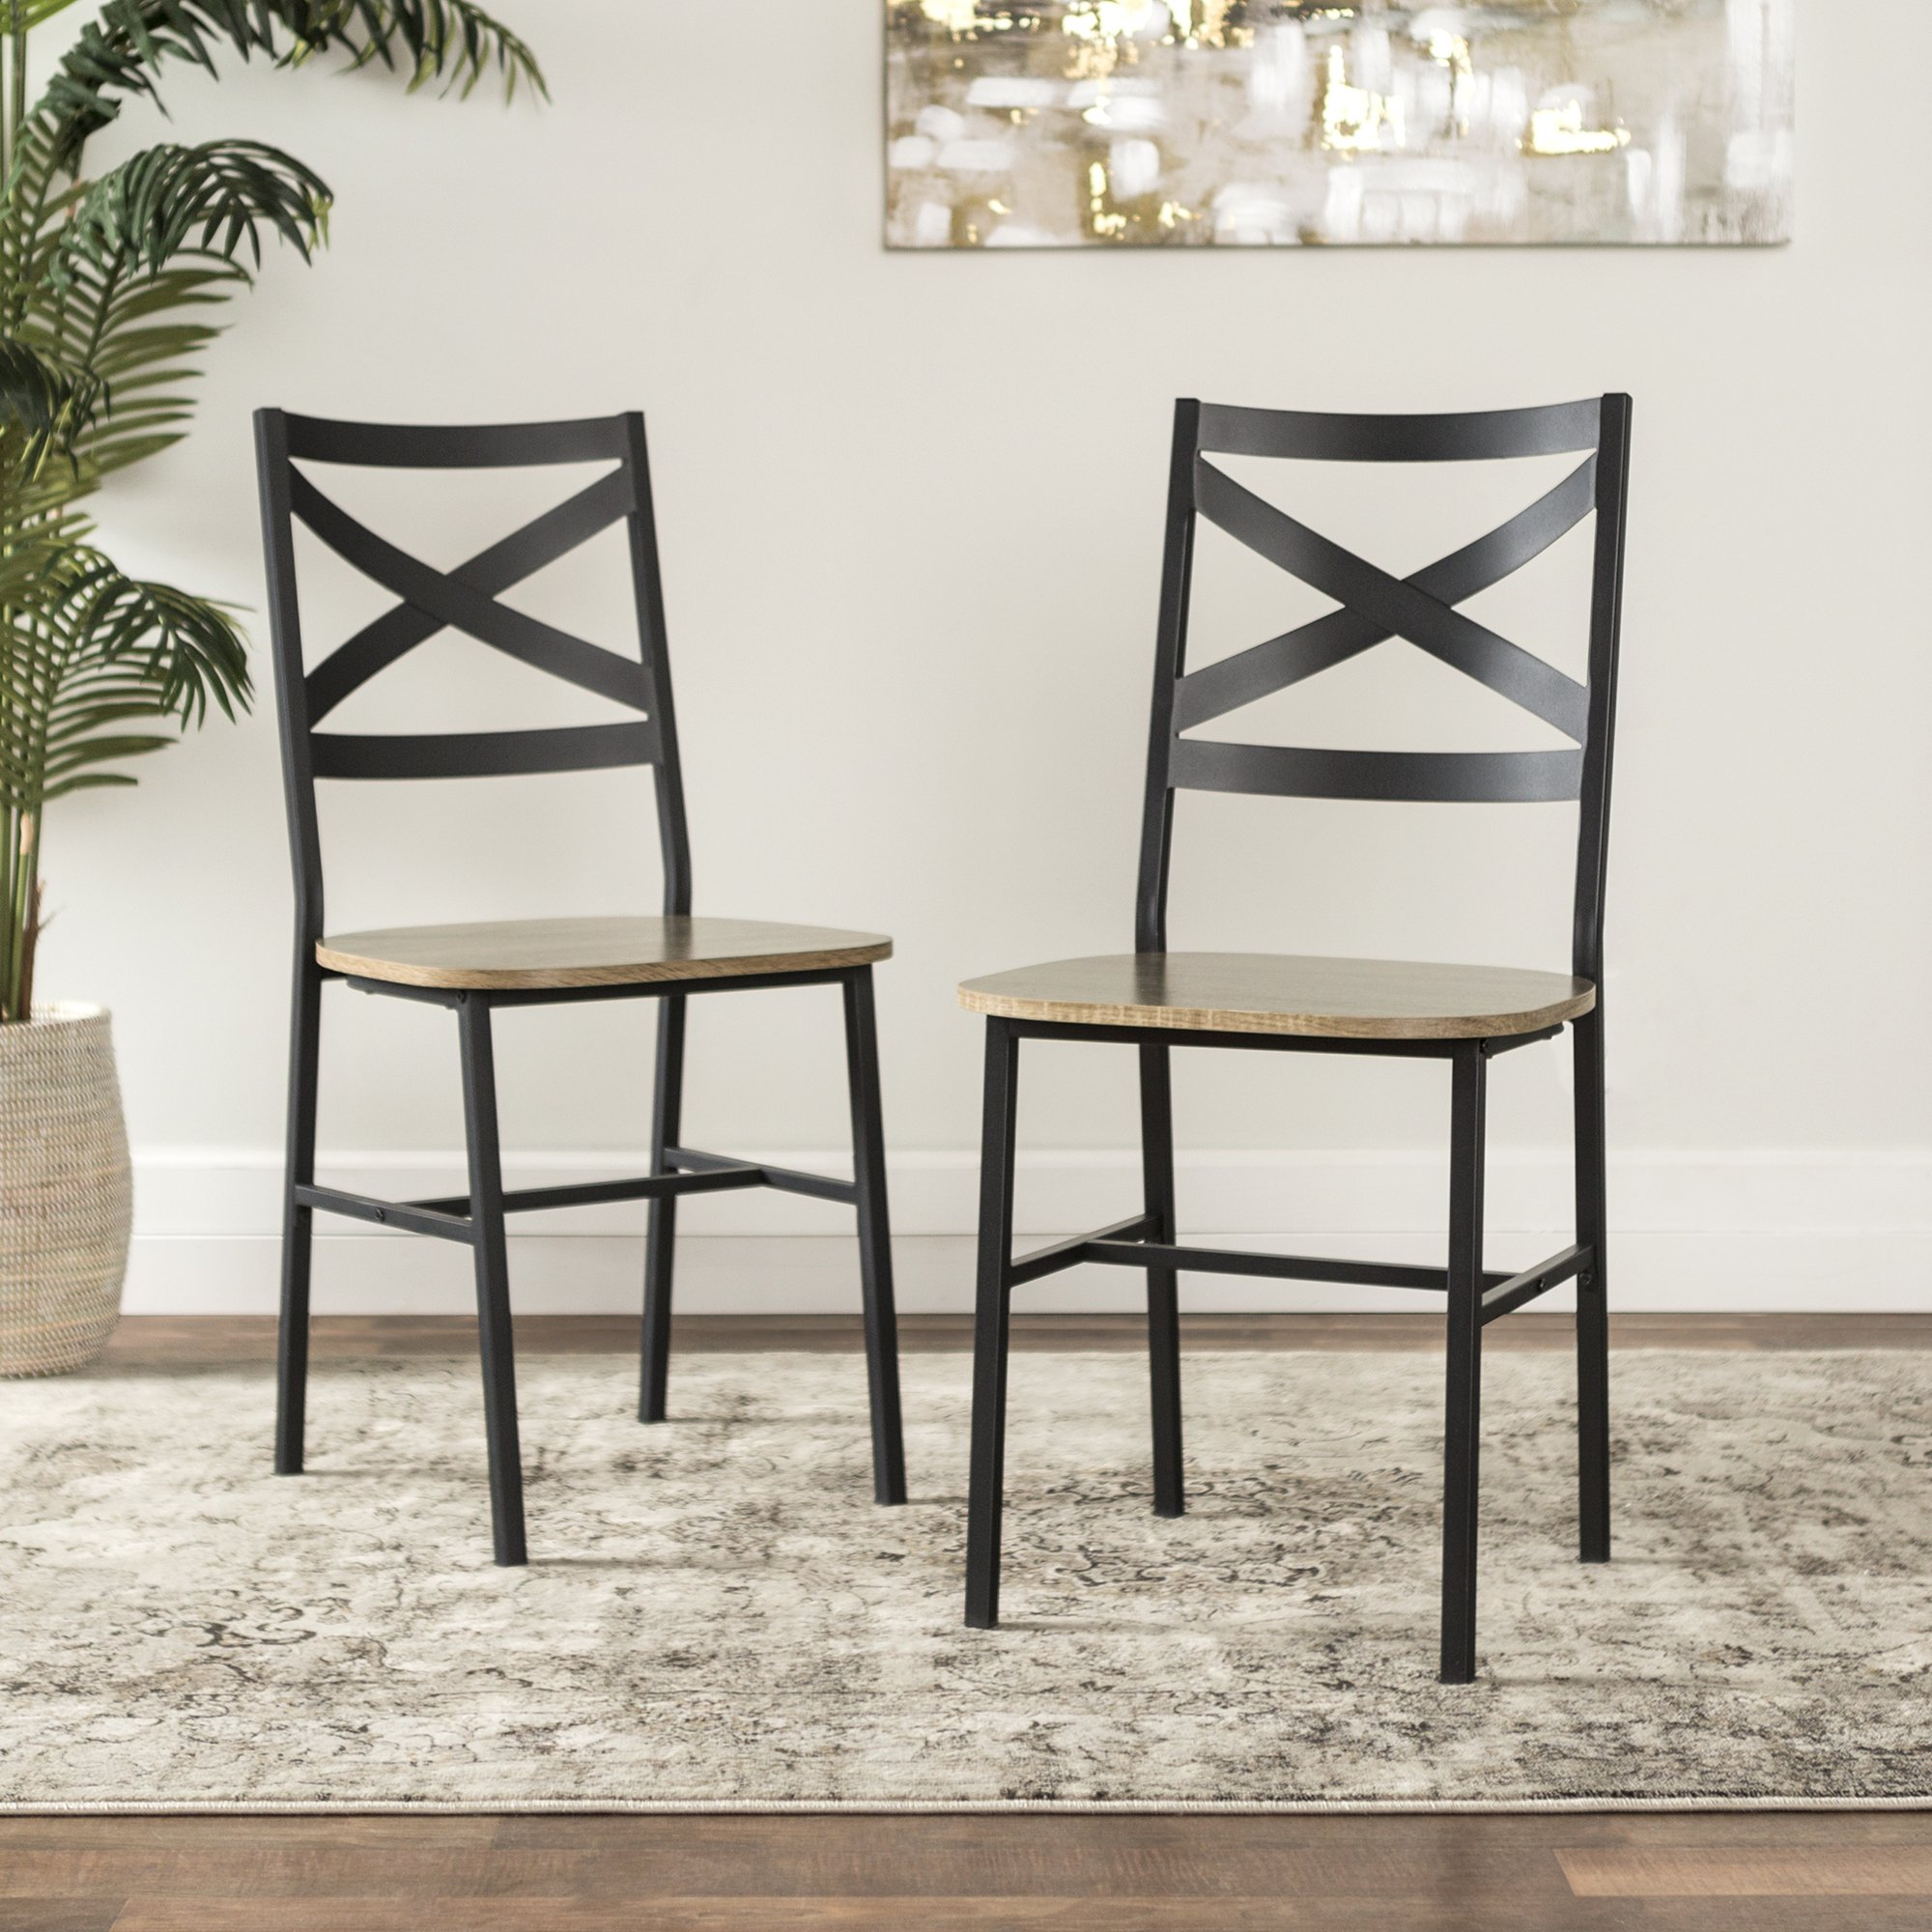 WE Furniture AZH18AI2AG Dining Chairs, Set of 2, Driftwood